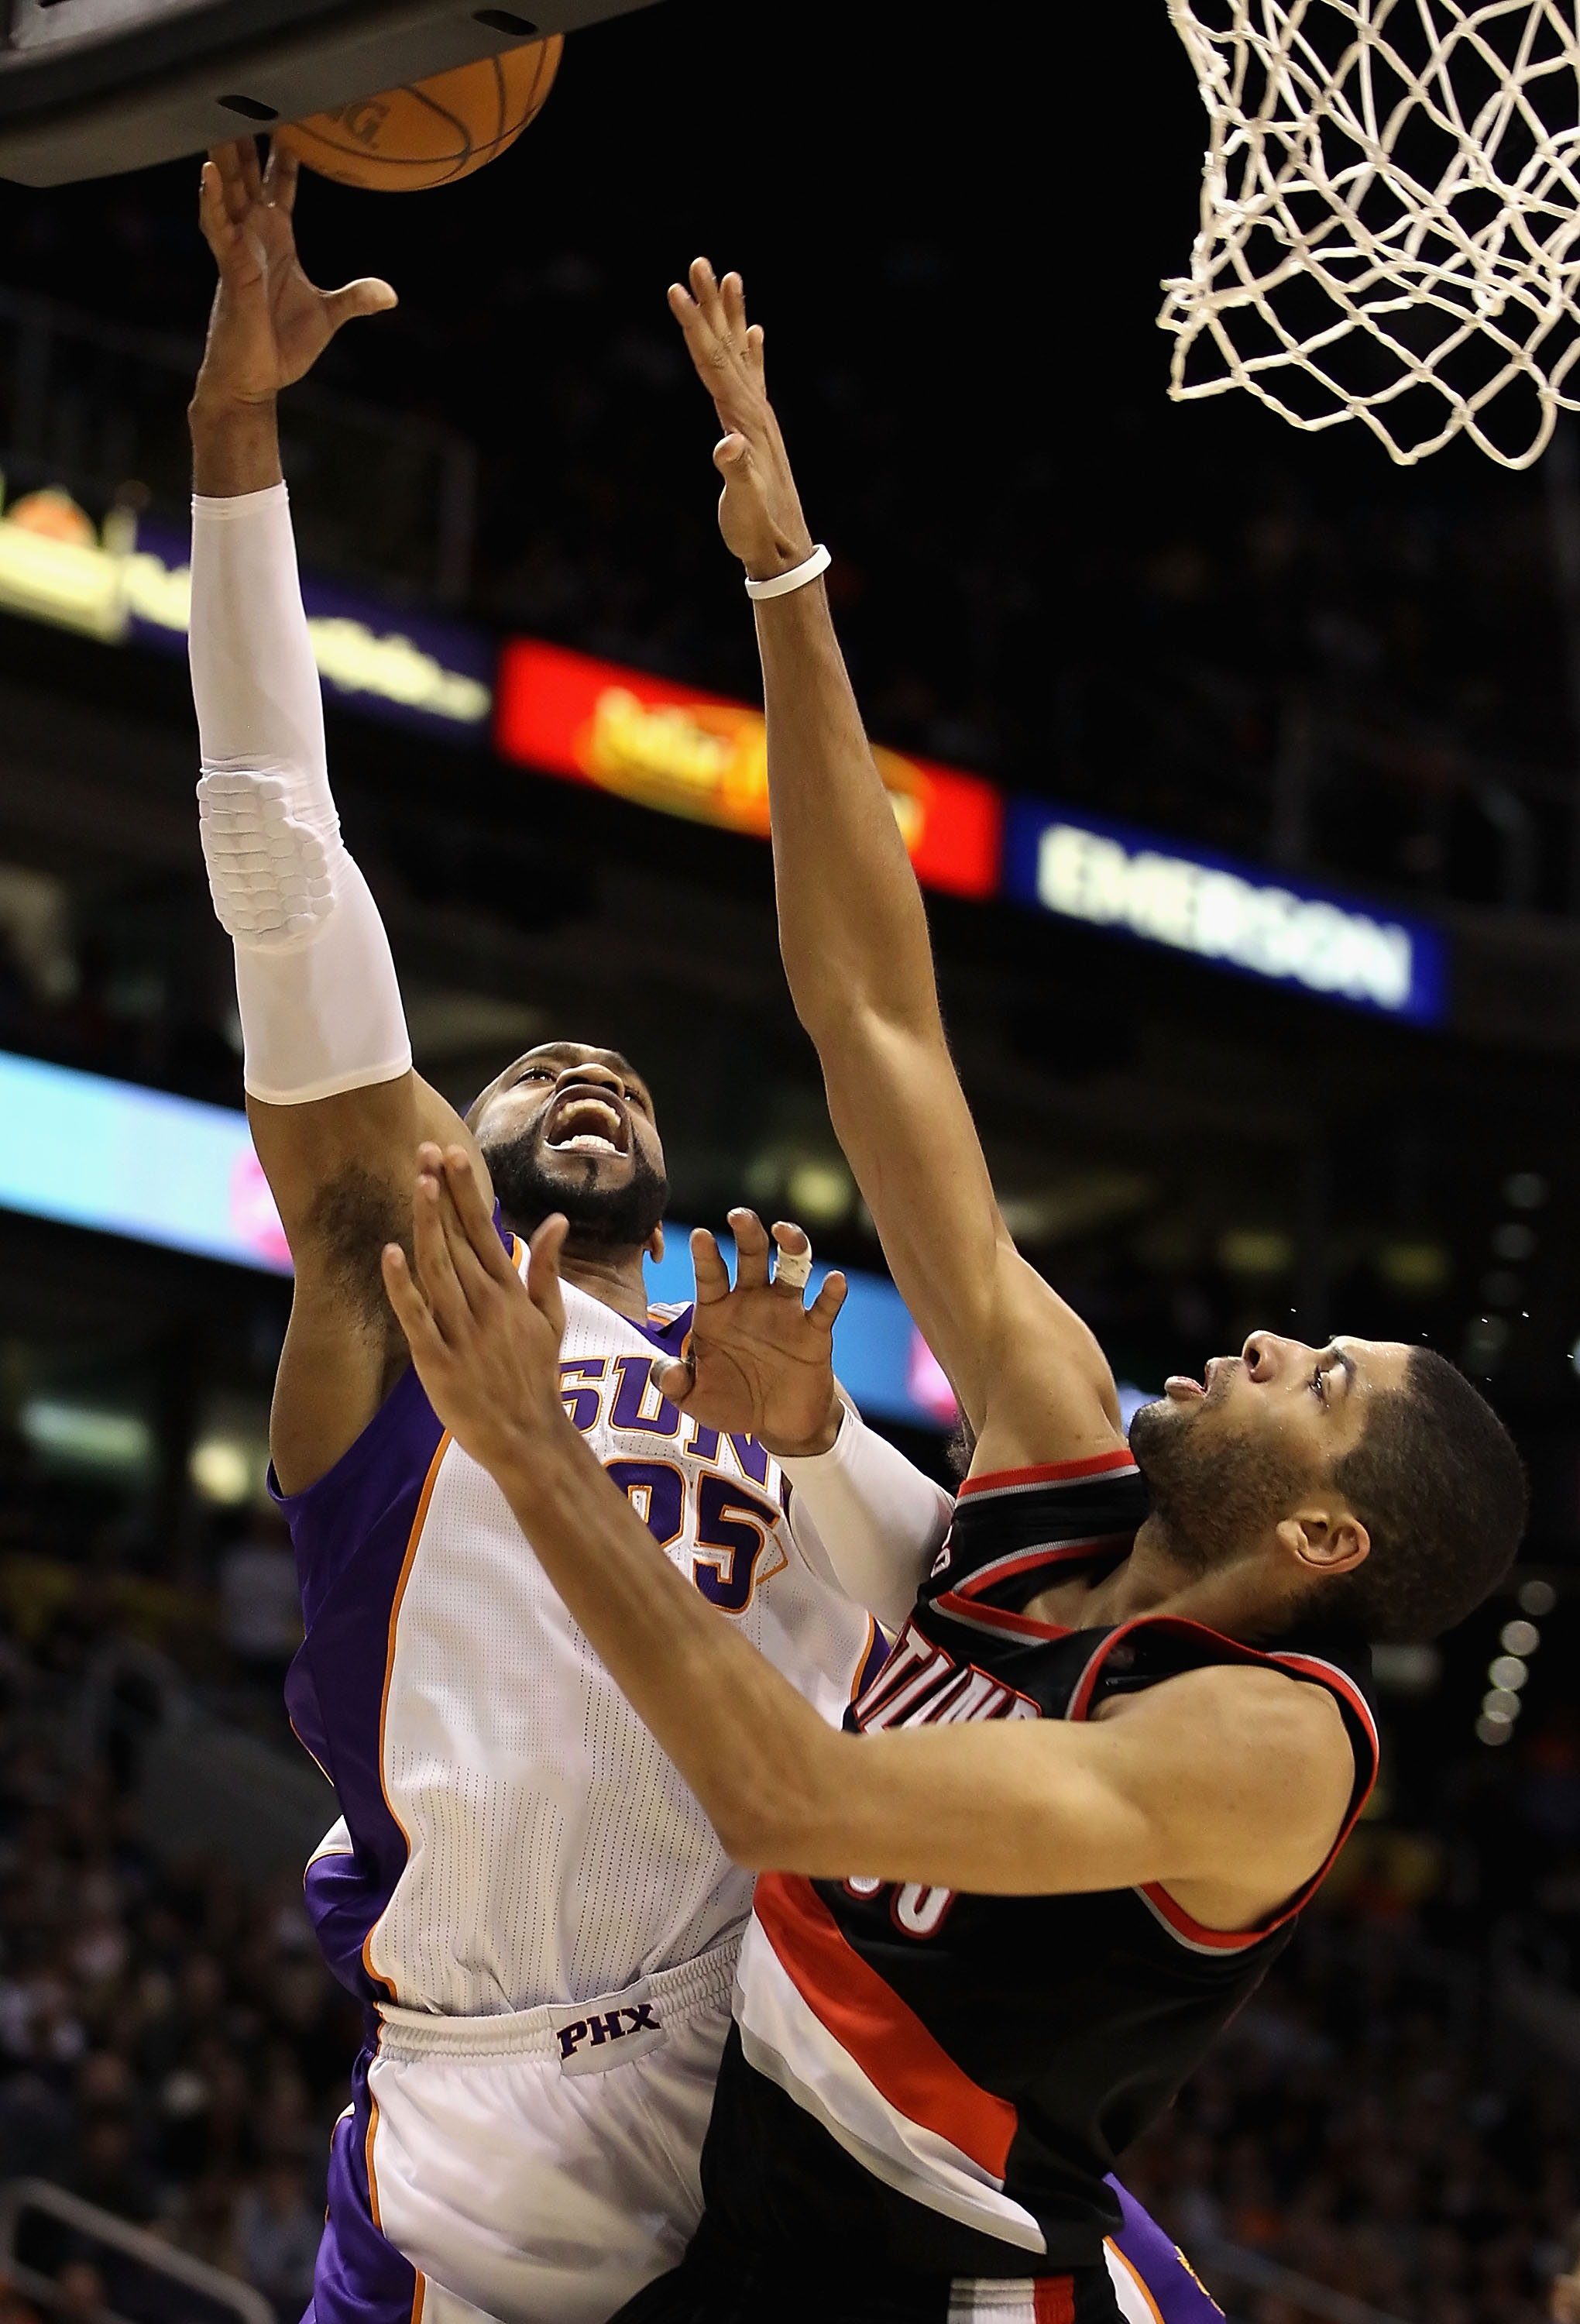 PHOENIX, AZ - JANUARY 14:  Vince Carter #25 of the Phoenix Suns lays up a shot over Nicolas Batum #88 of the Portland Trail Blazers during the NBA game at US Airways Center on January 14, 2011 in Phoenix, Arizona. The Suns defeated the Trail Blazers 115-1